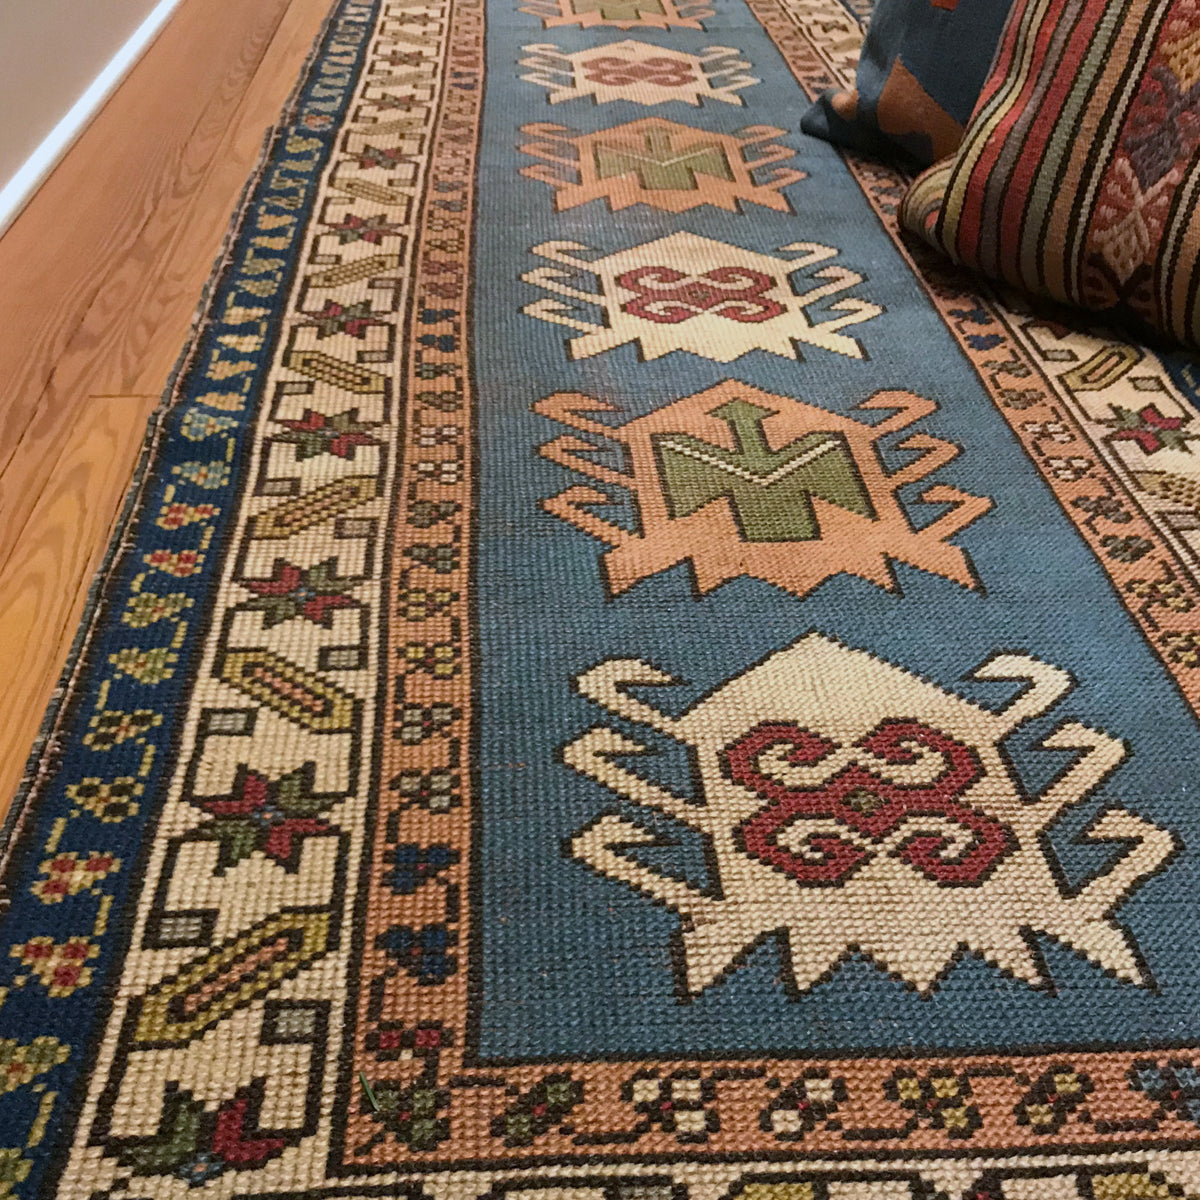 Handwoven vintage Turkish rug with hard to find colors. The runner is sized at 39x115.